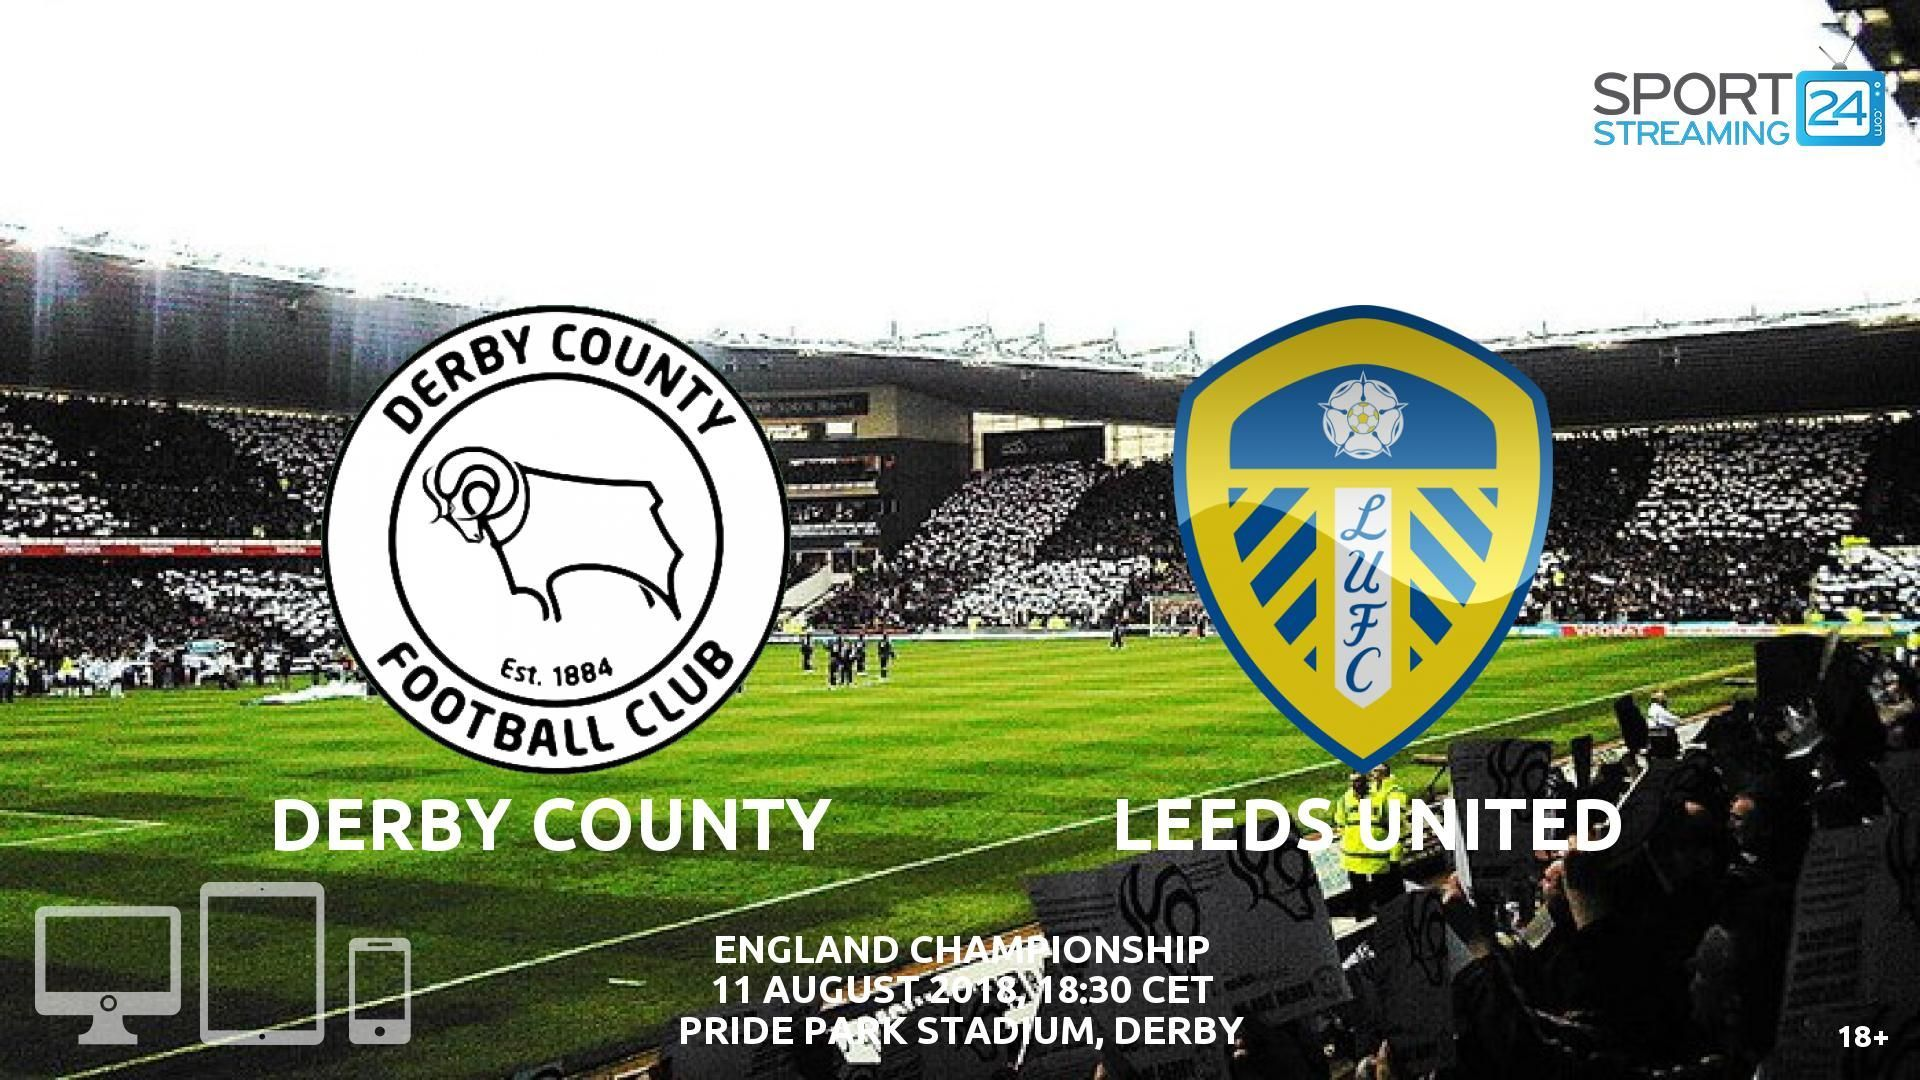 Derby v Leeds Live Streaming Football (With images